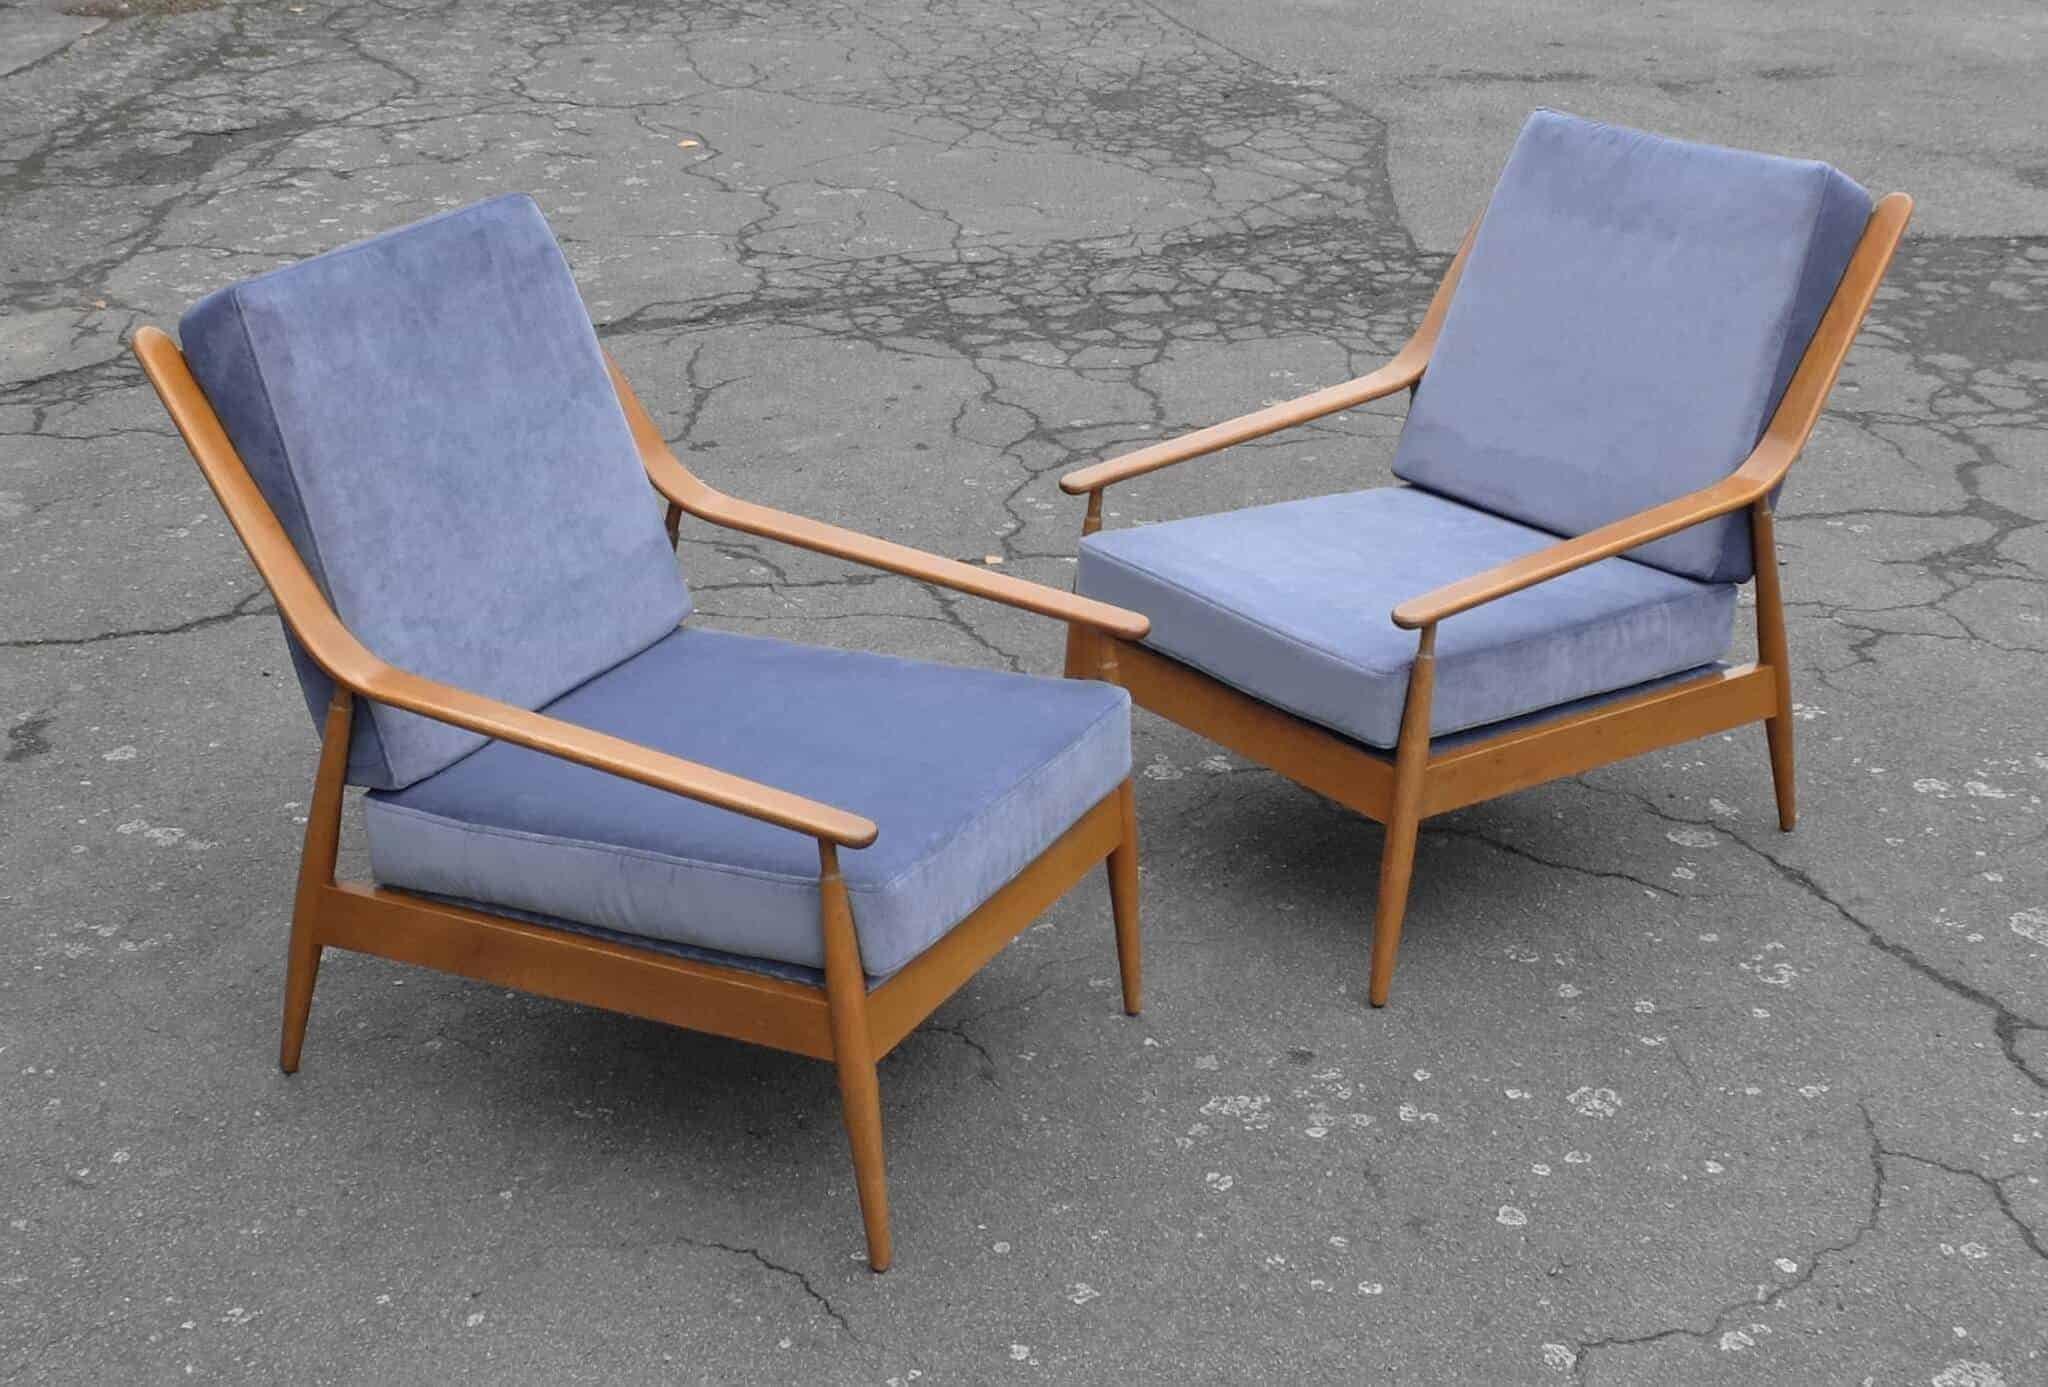 Scandart 1960's sofa and armachairs